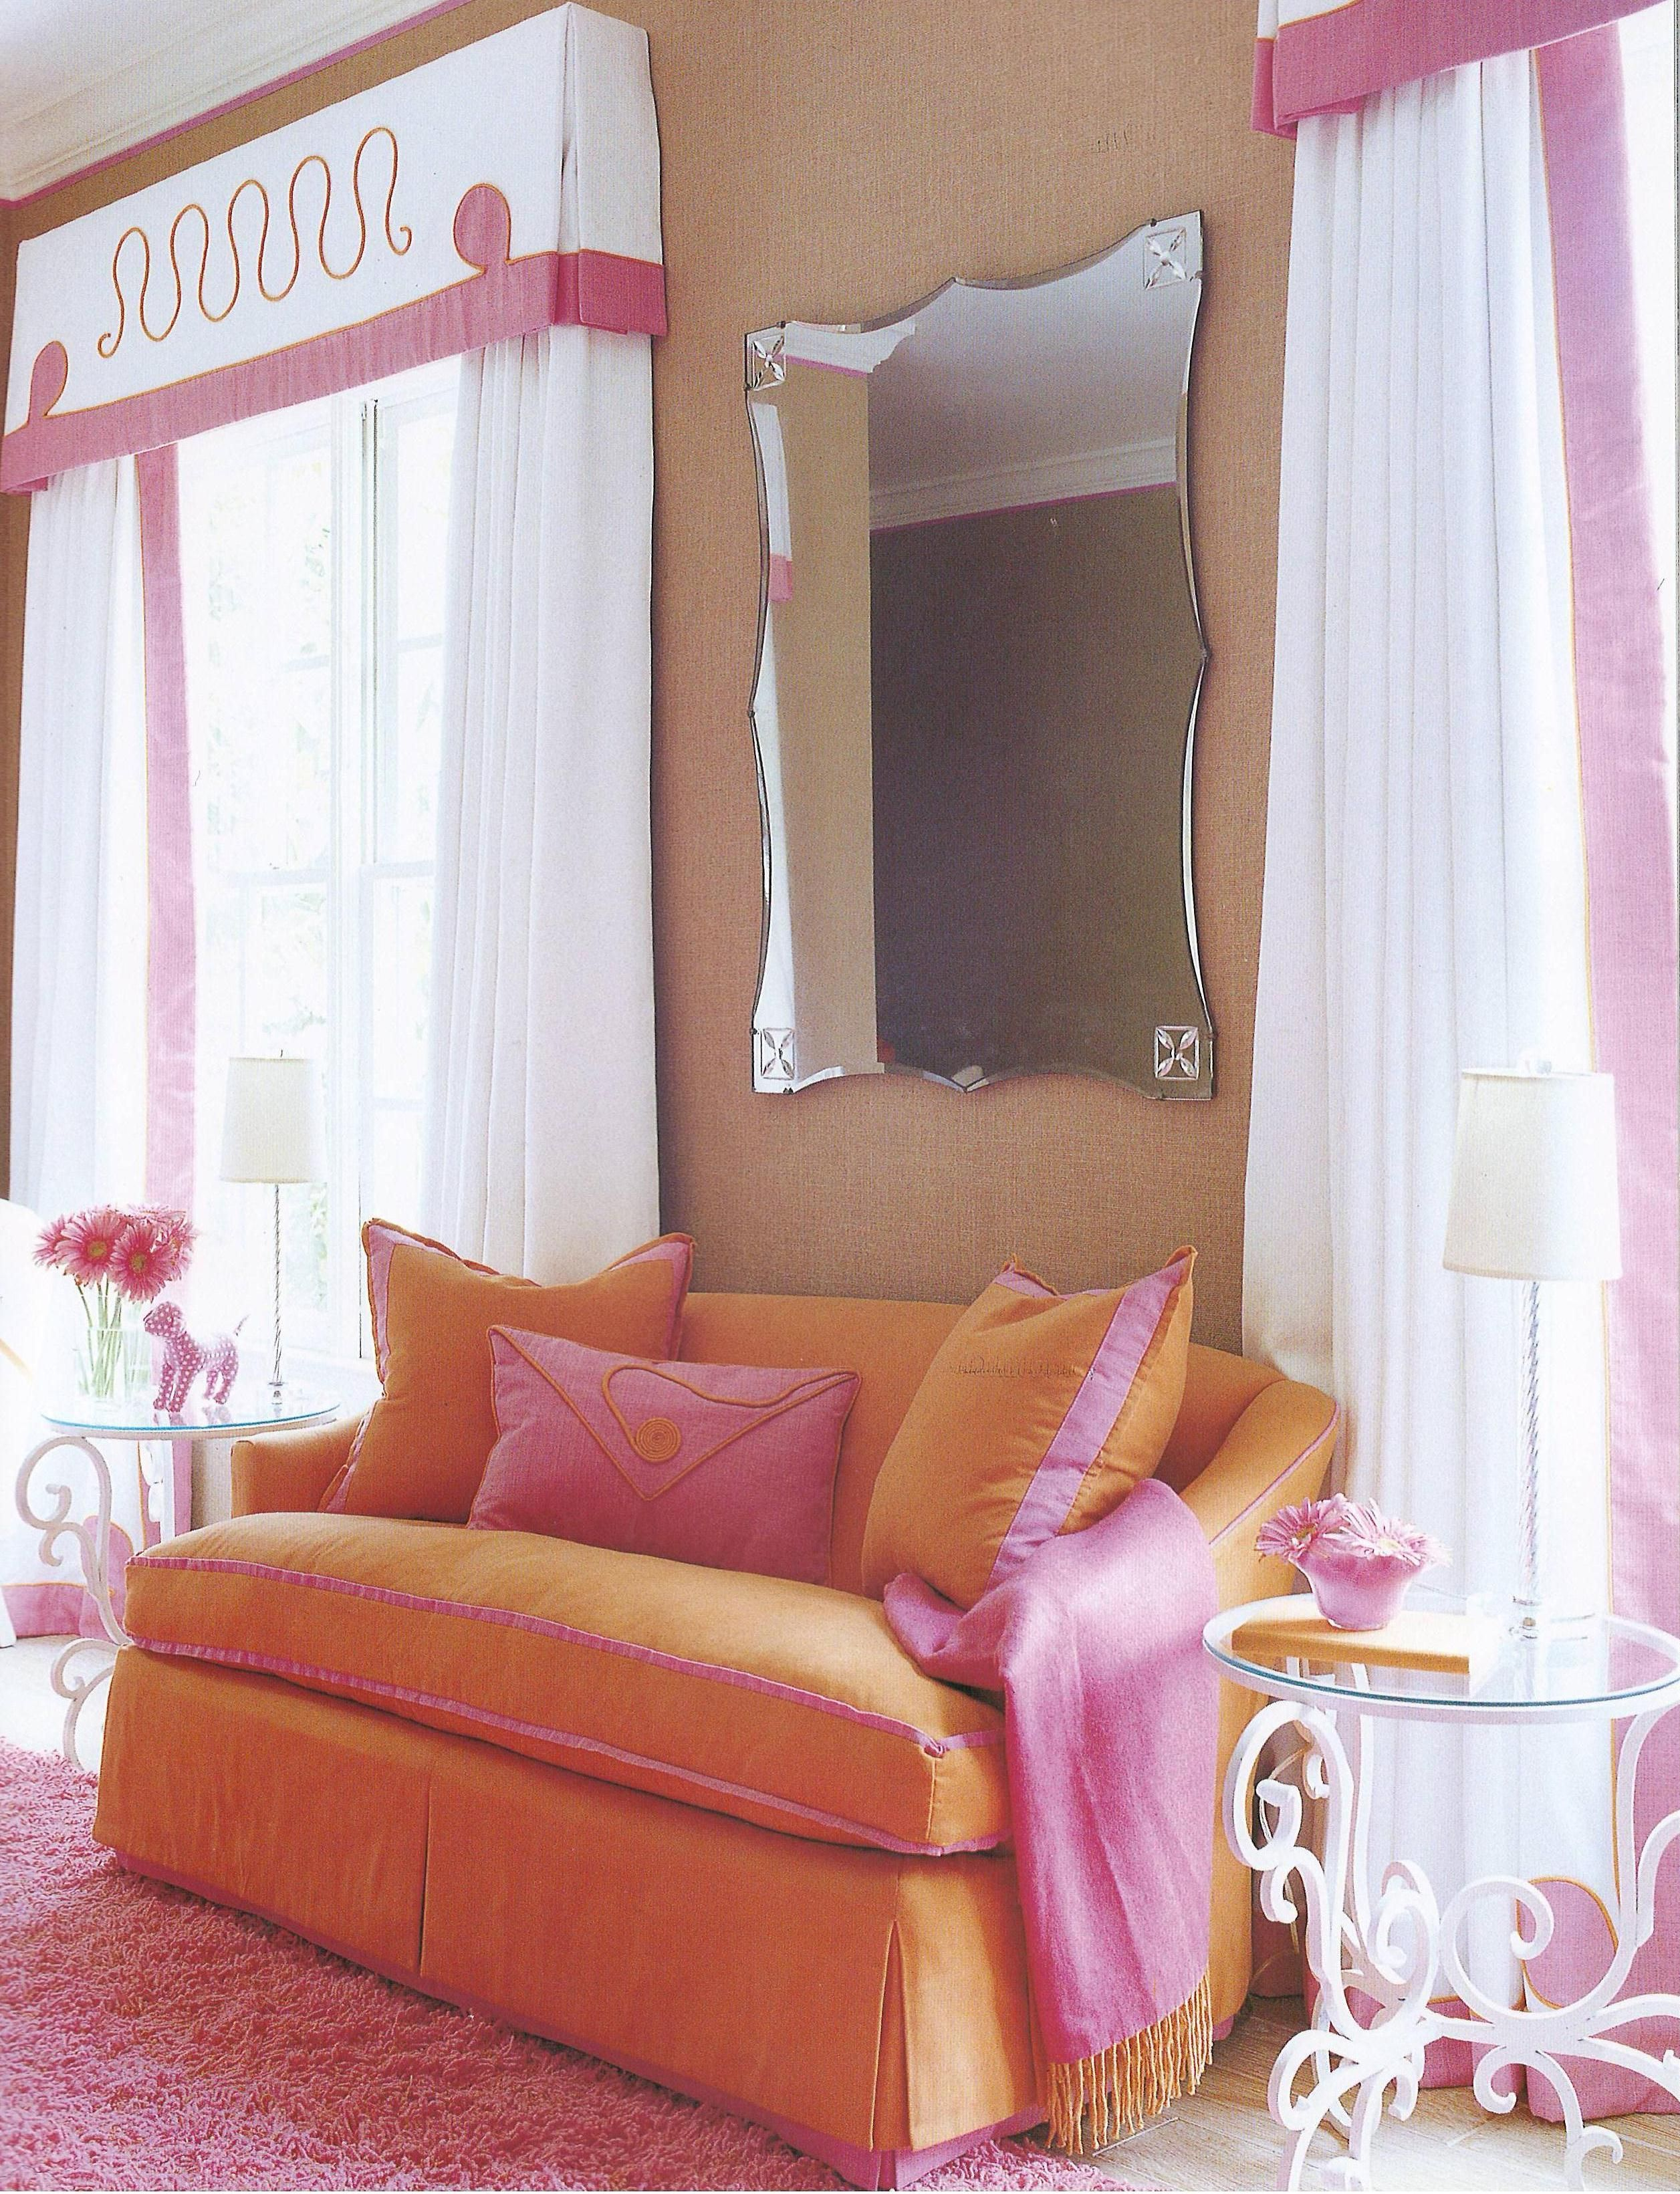 Bed and window placement  drapery u valances  interior by suzanne kasler  window decor